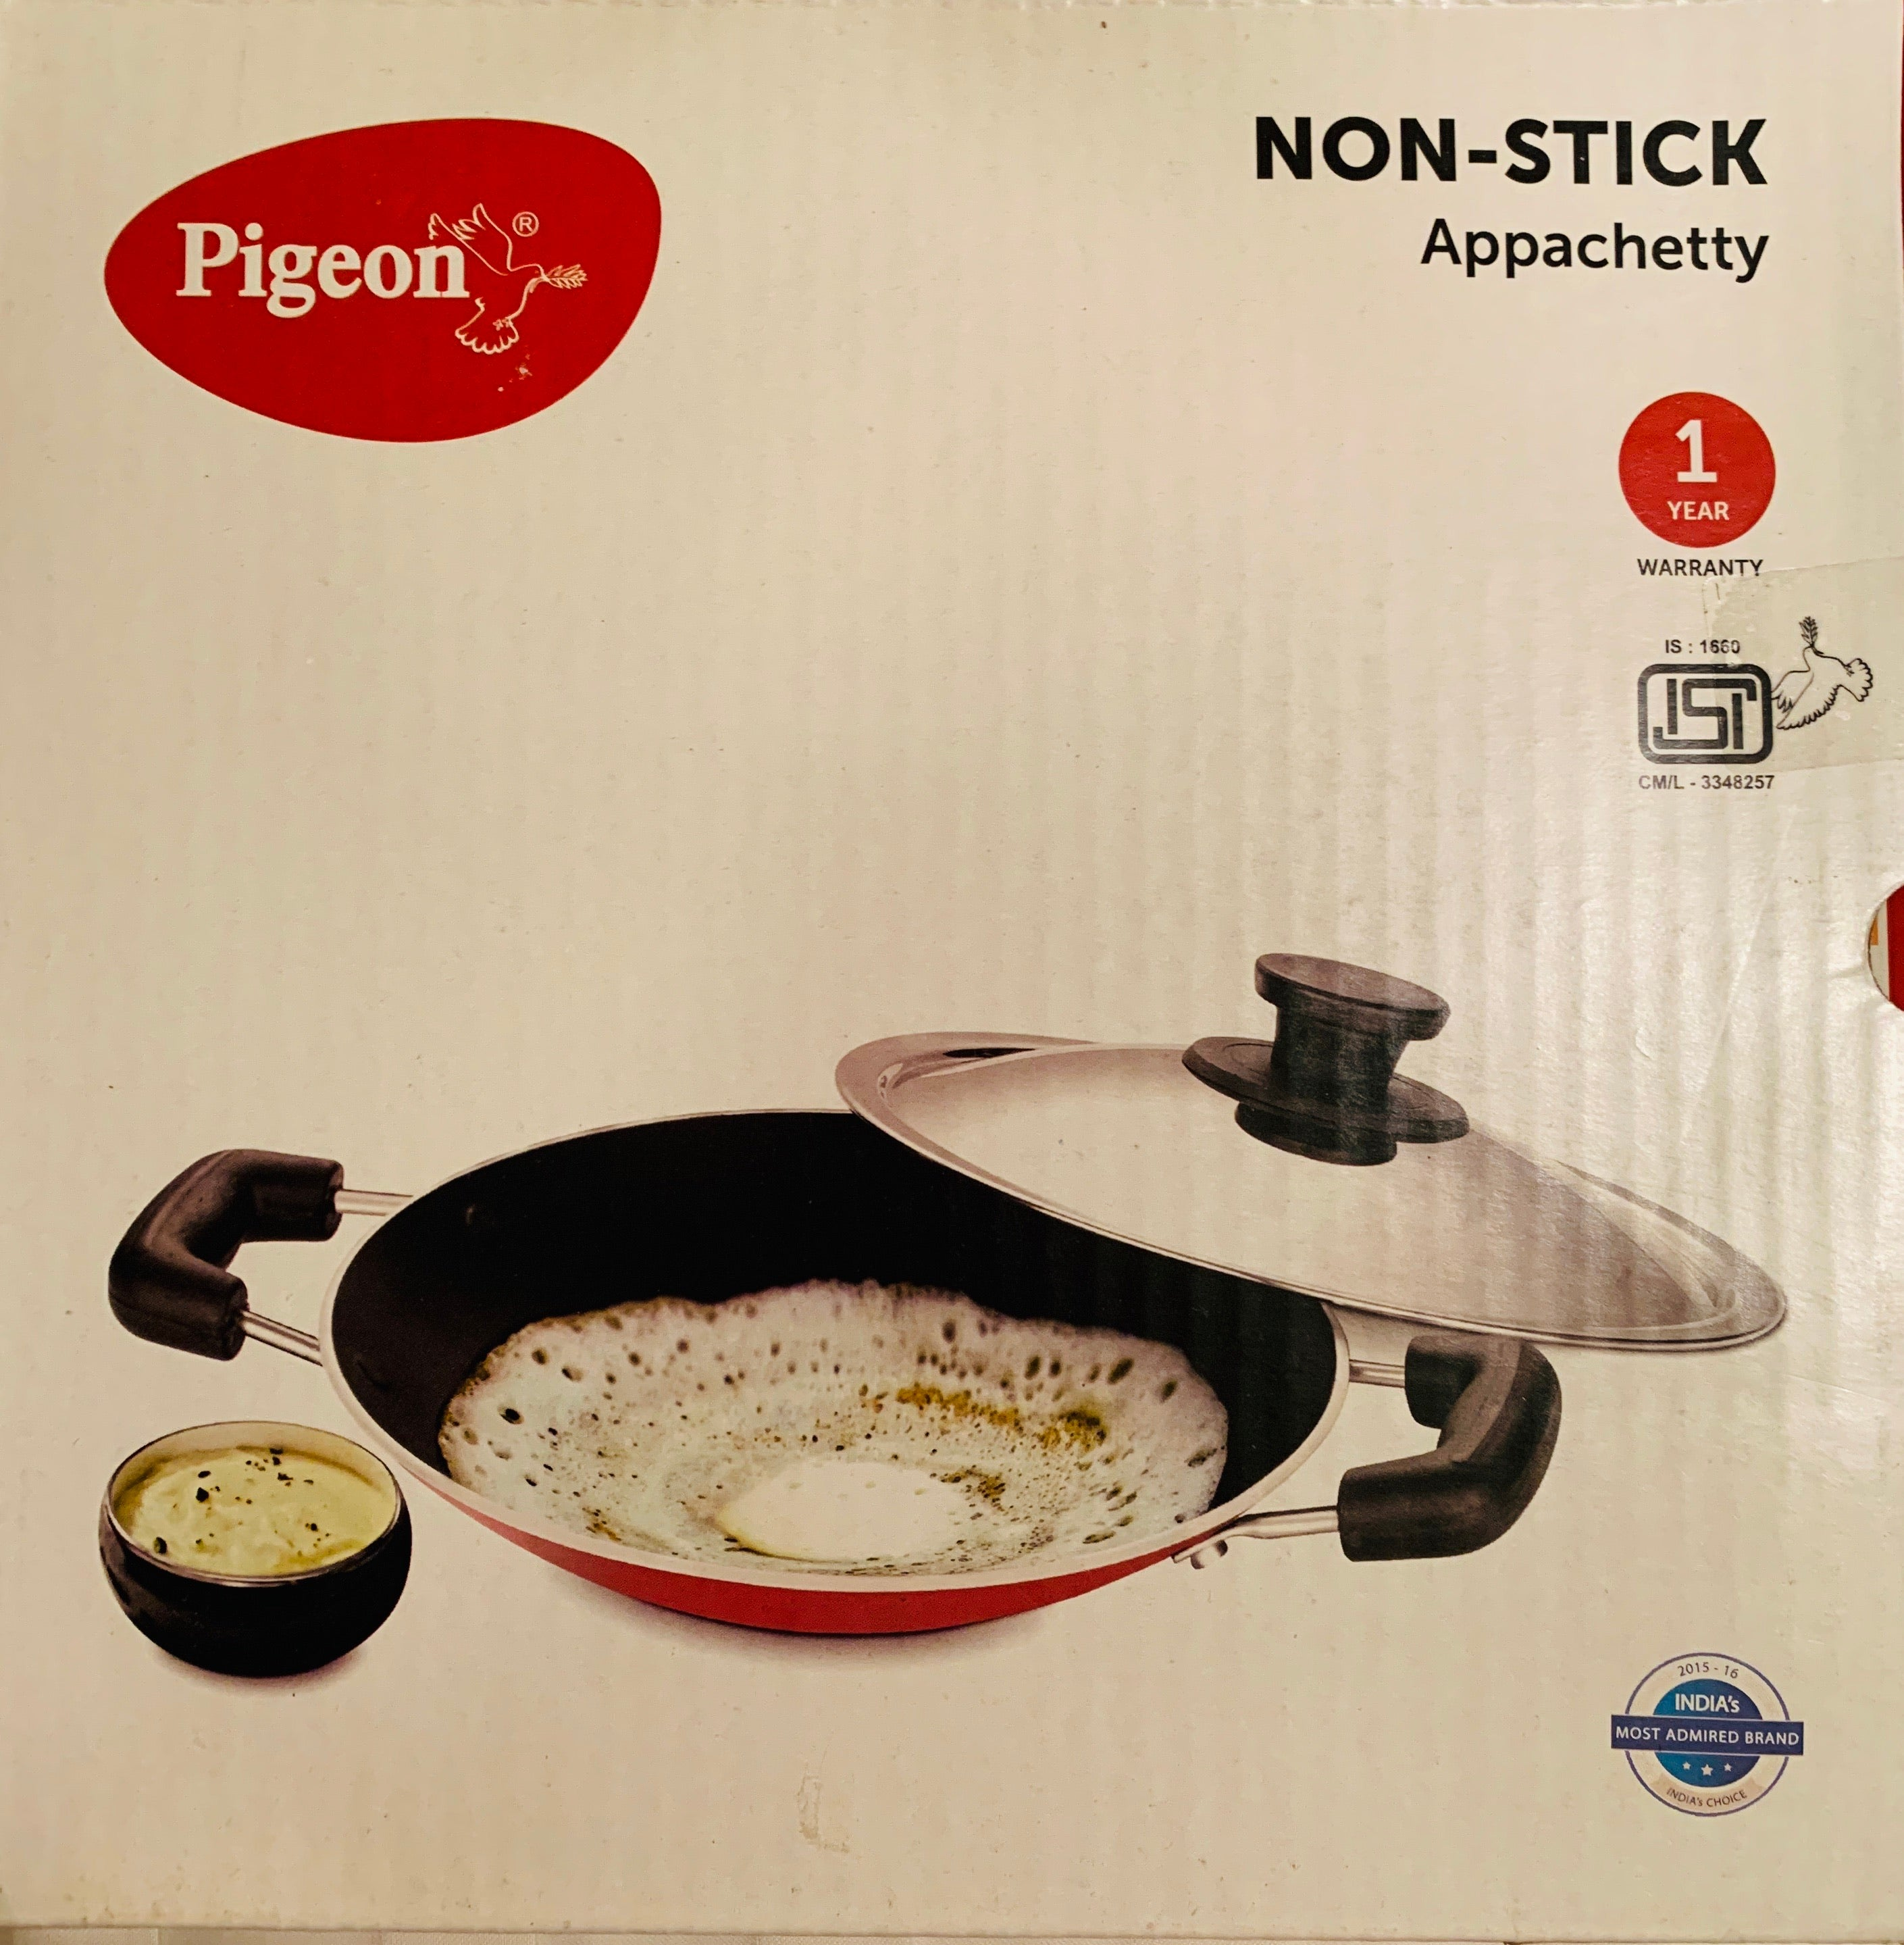 Non-Stick Appachatty